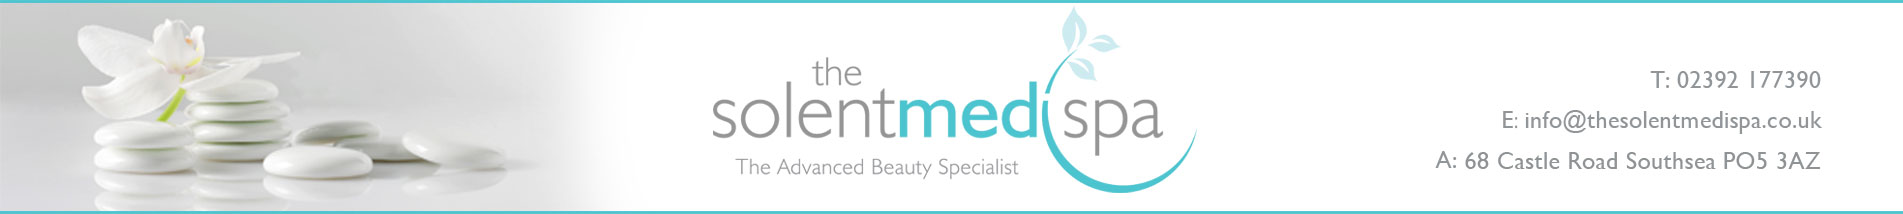 The Solent Medi Spa - Southsea and Chichester